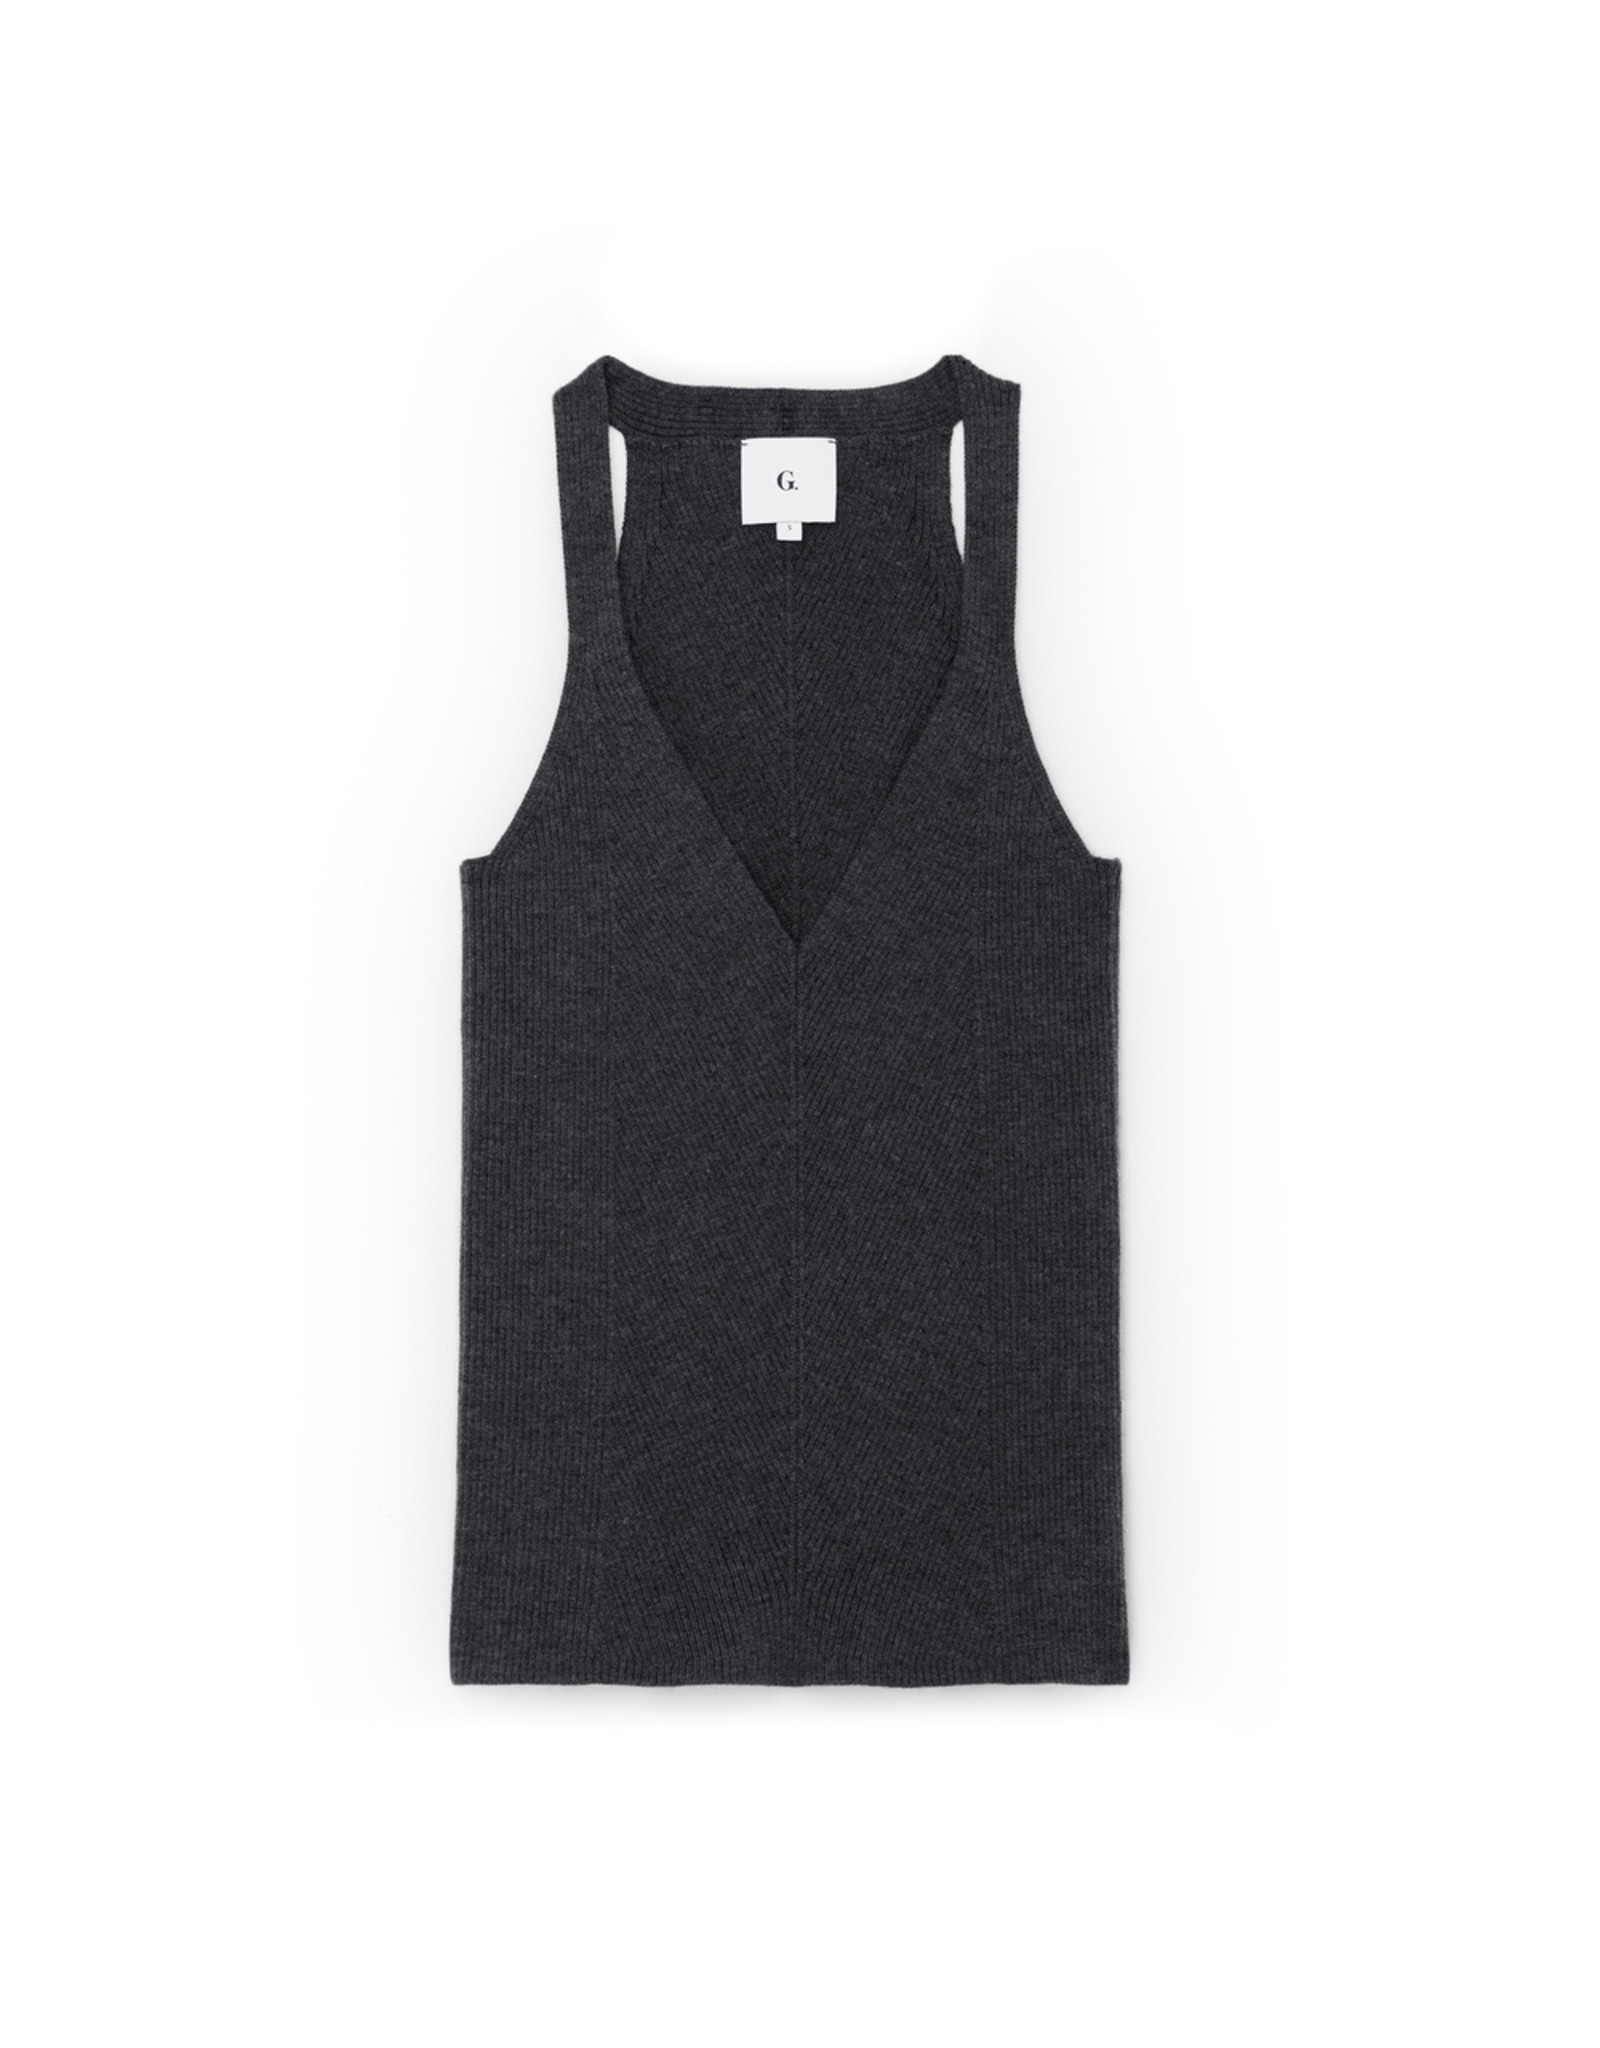 G. Label G. Label Samantha Engineered-Rib Tank (Color: Charcoal, Size: S)